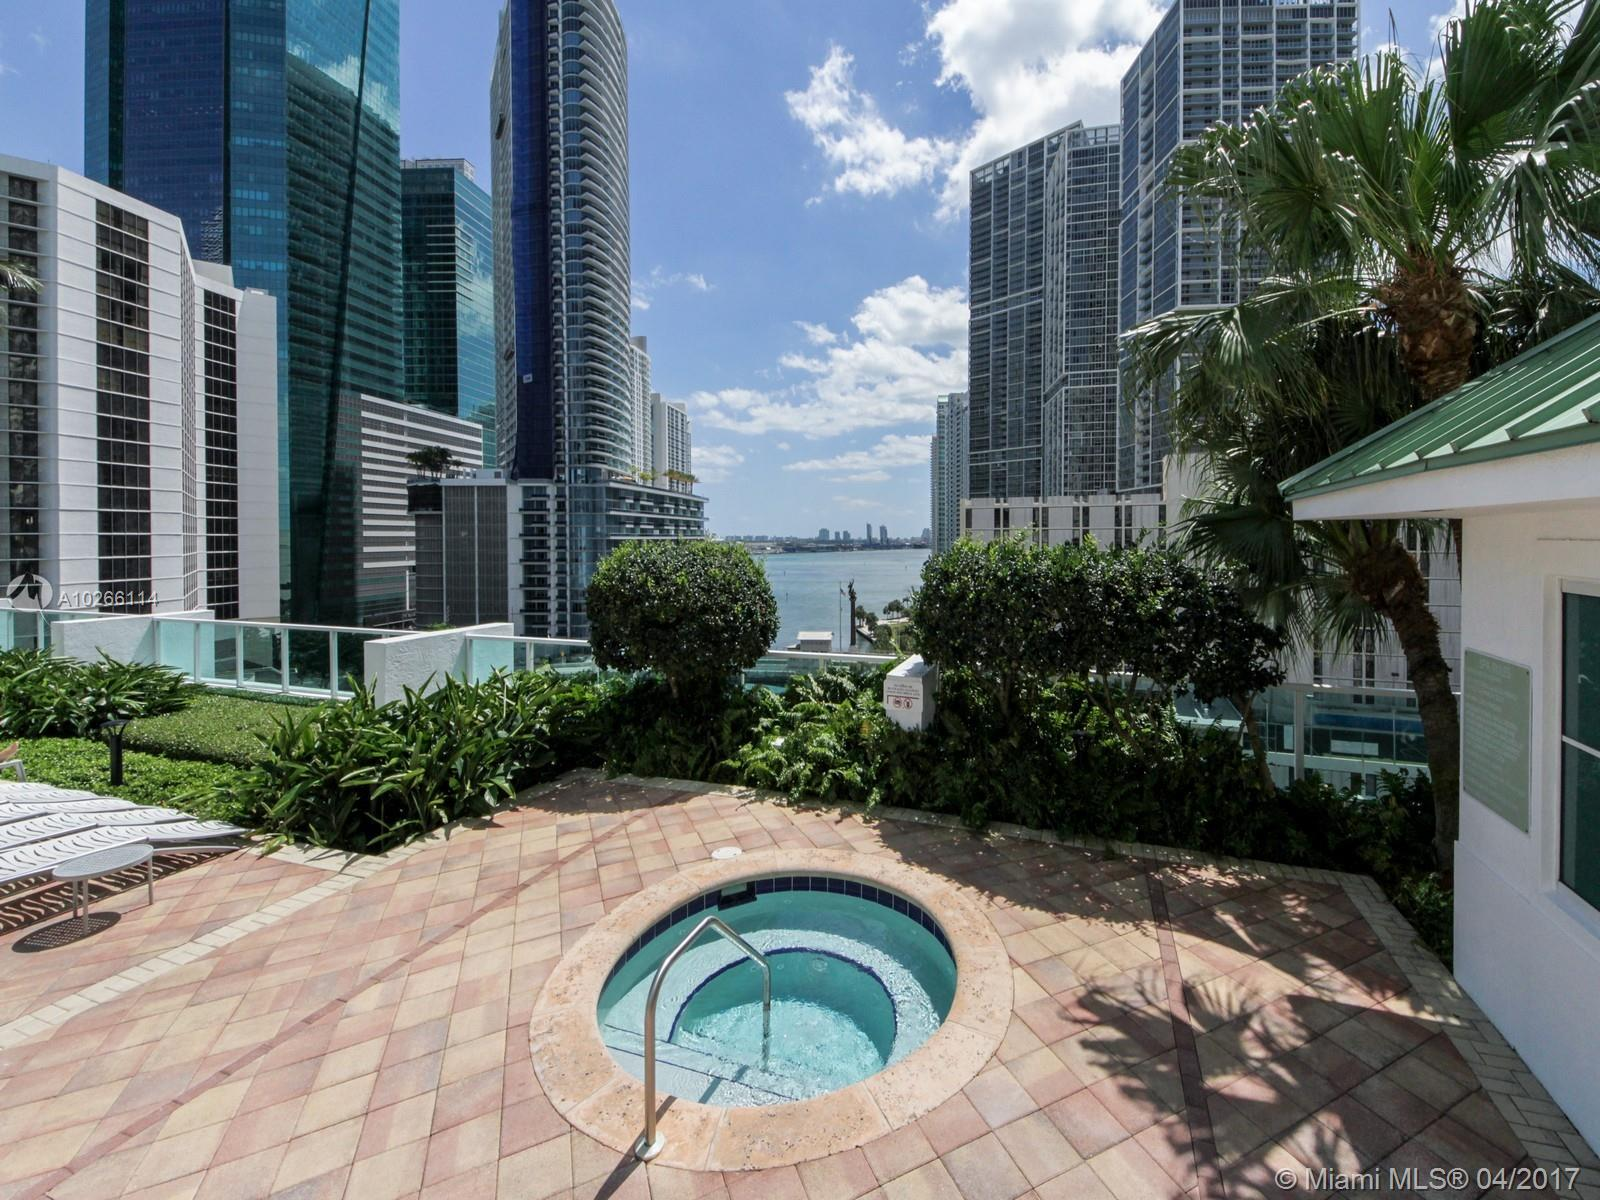 Brickell on the River South image #22